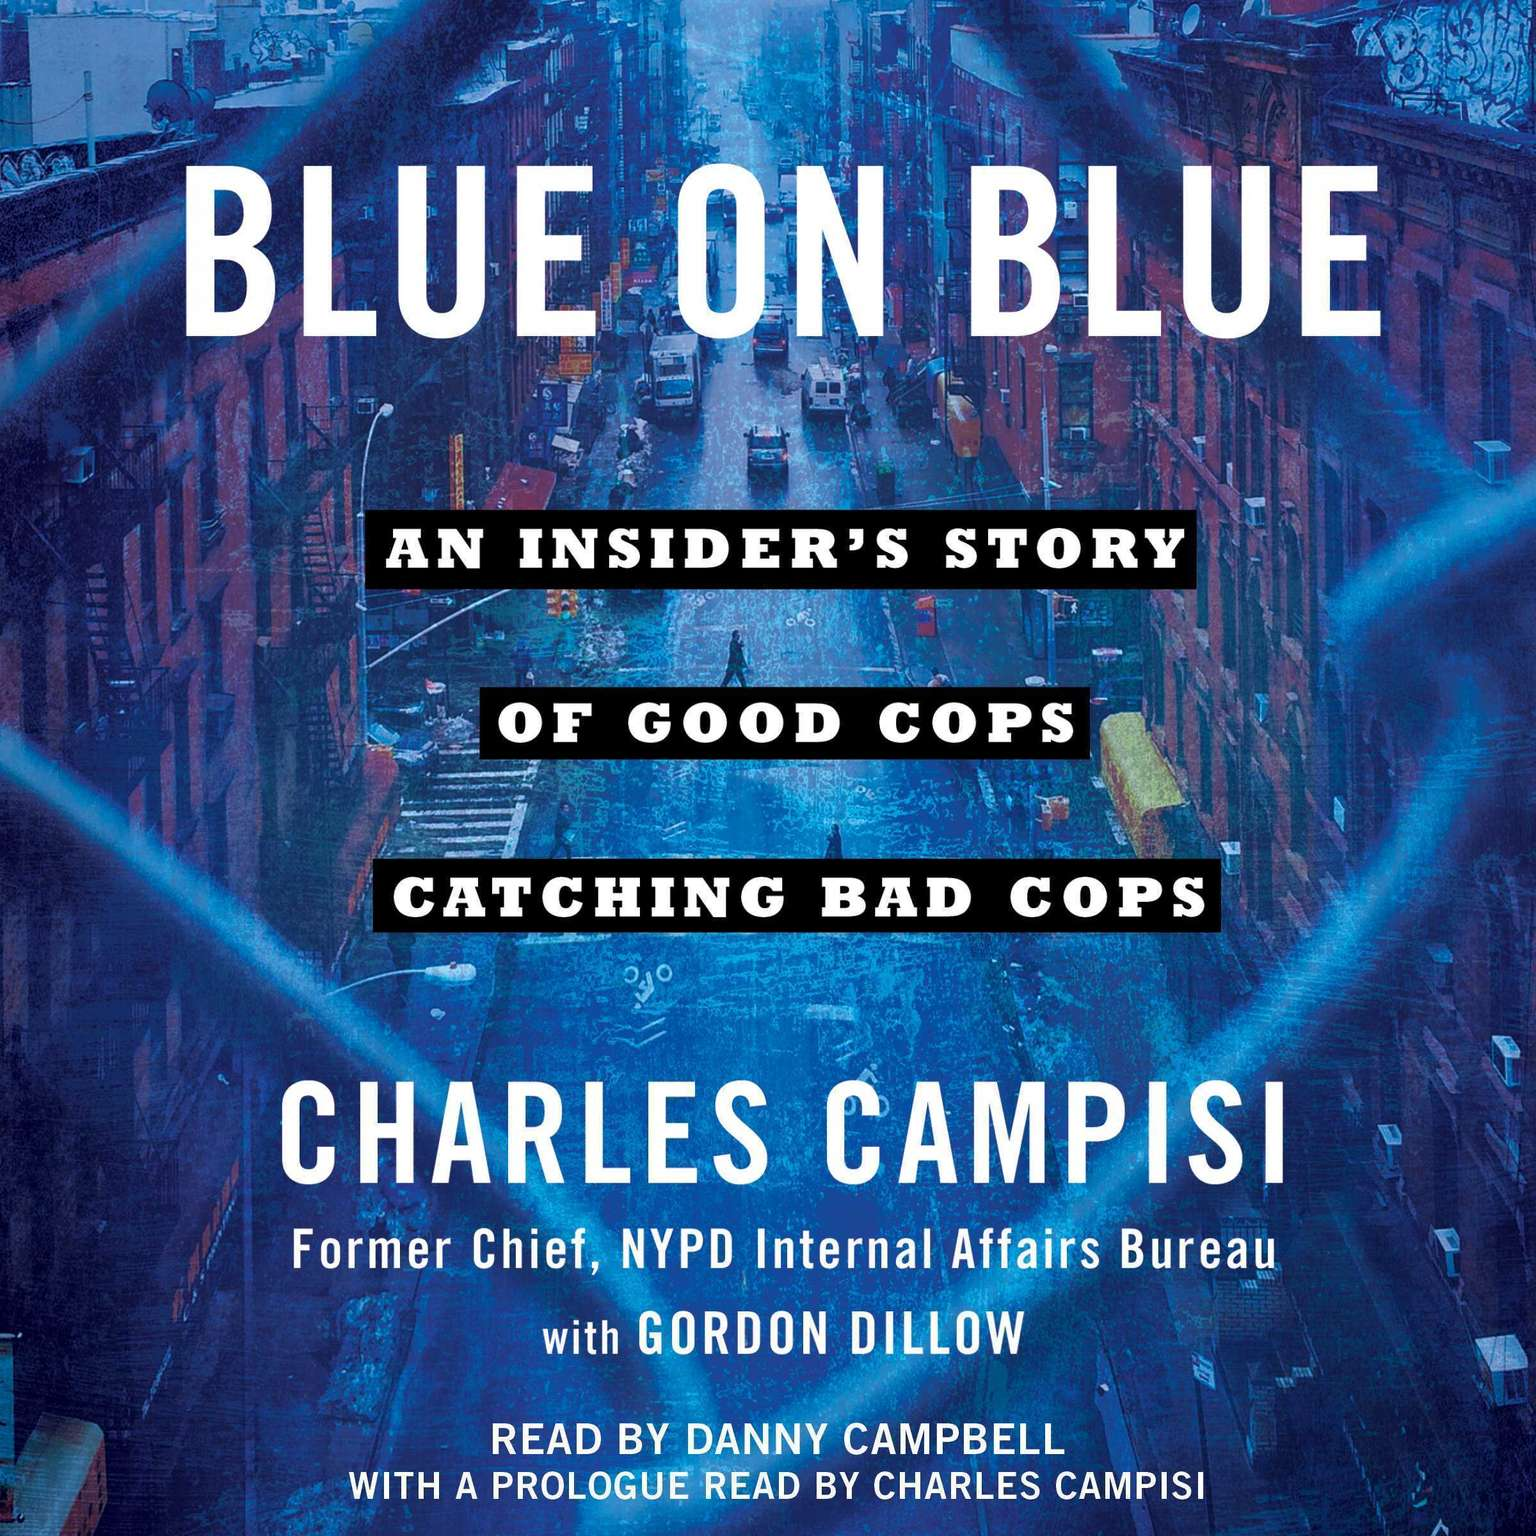 Blue on Blue: An Insiders Story of Good Cops Catching Bad Cops Audiobook, by Charles Campisi